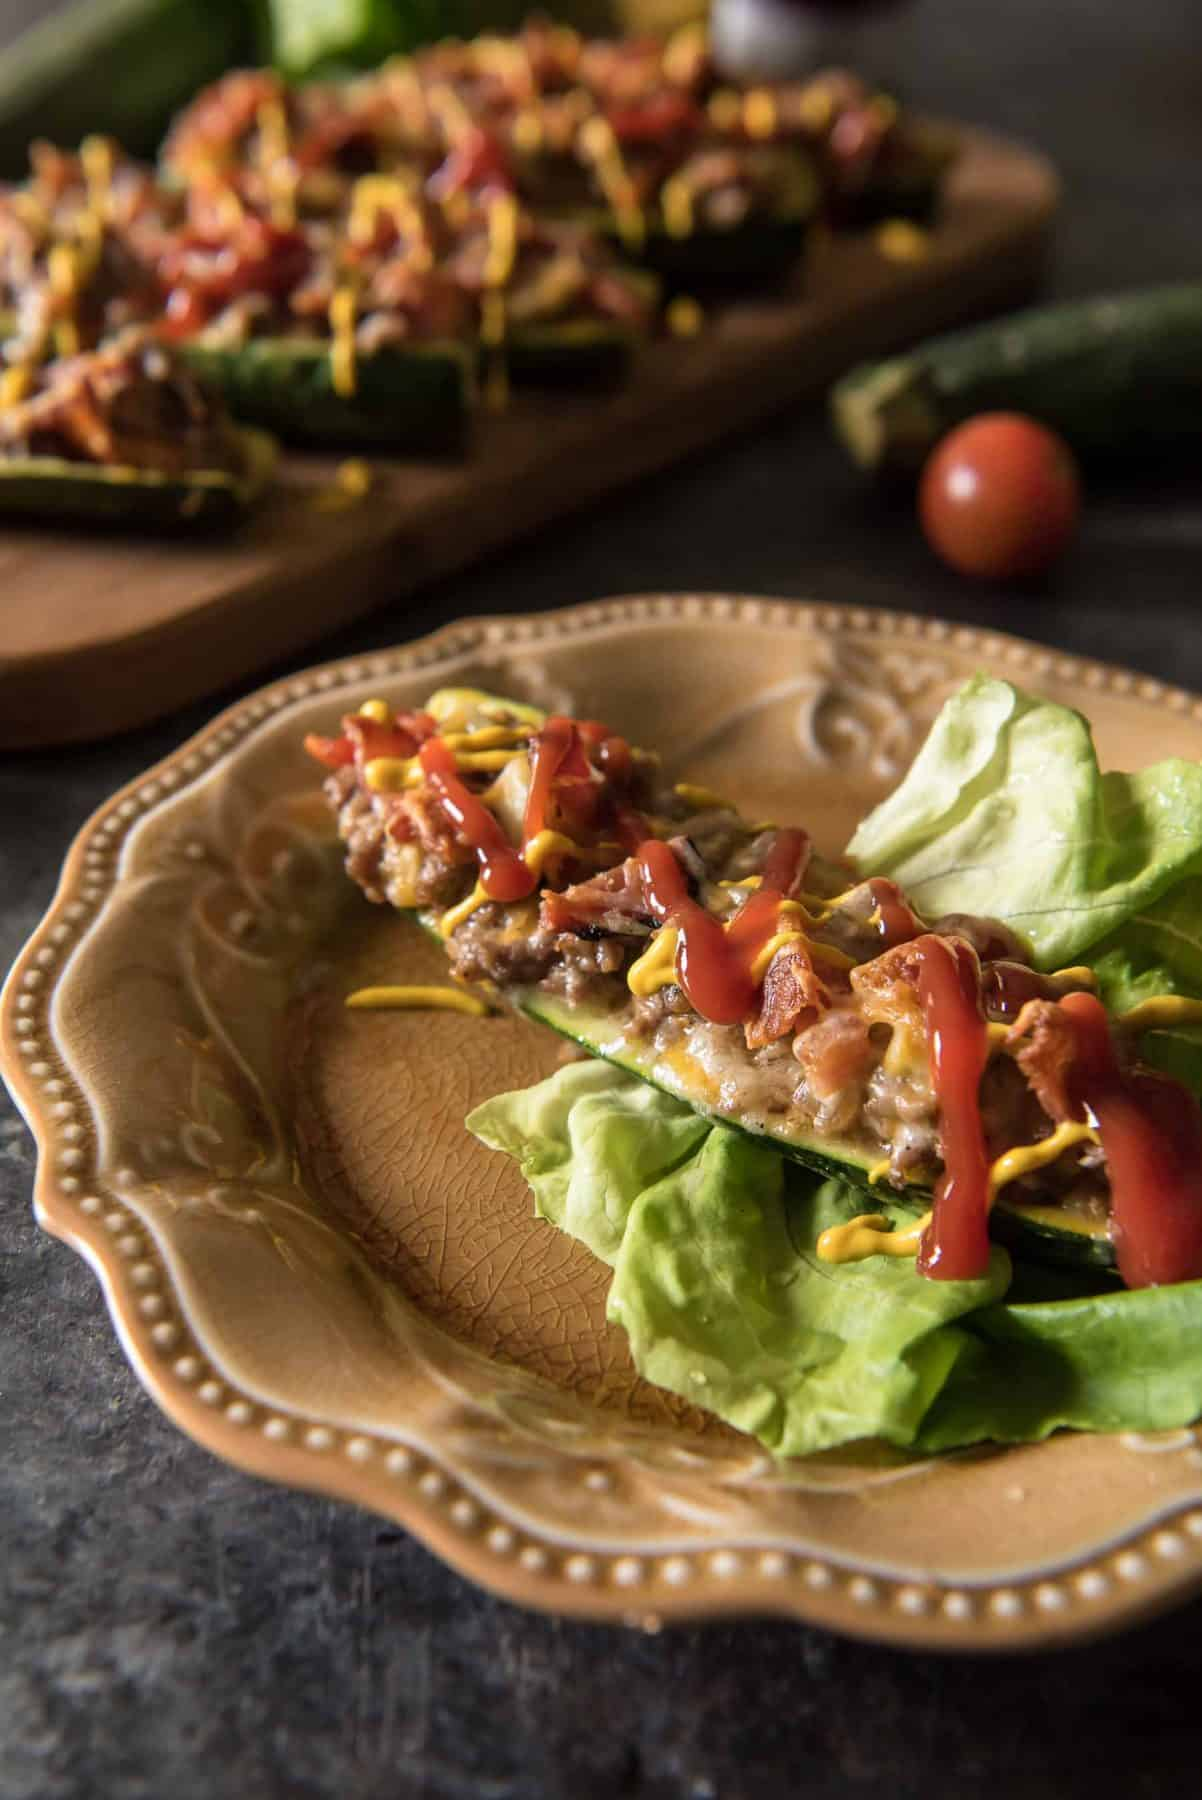 These low-carb, keto-friendlyBacon Cheeseburger Zucchini Boats are surprisingly filling! They're loaded with cheese and all the flavors of your favorite burger, and will easily calm your craving for one - without the bun!